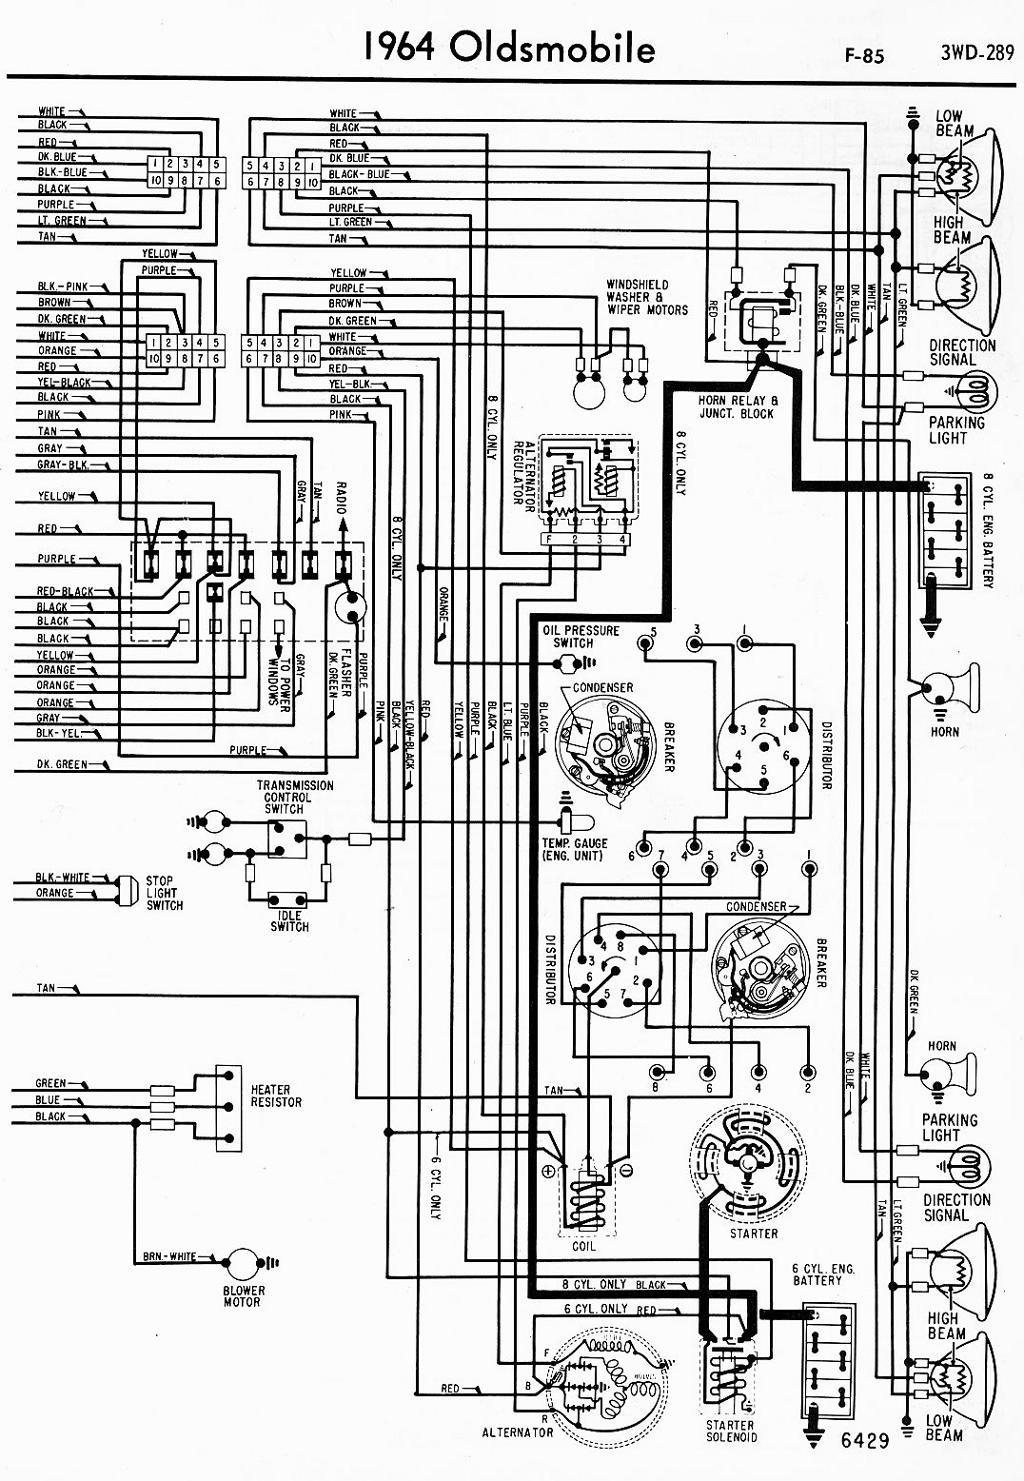 1971 Oldsmobile 442 Wiring Diagram Guide And Troubleshooting Of Diagrams Detailed Rh 7 6 Ocotillo Paysage Com Cutlass Supreme 1969